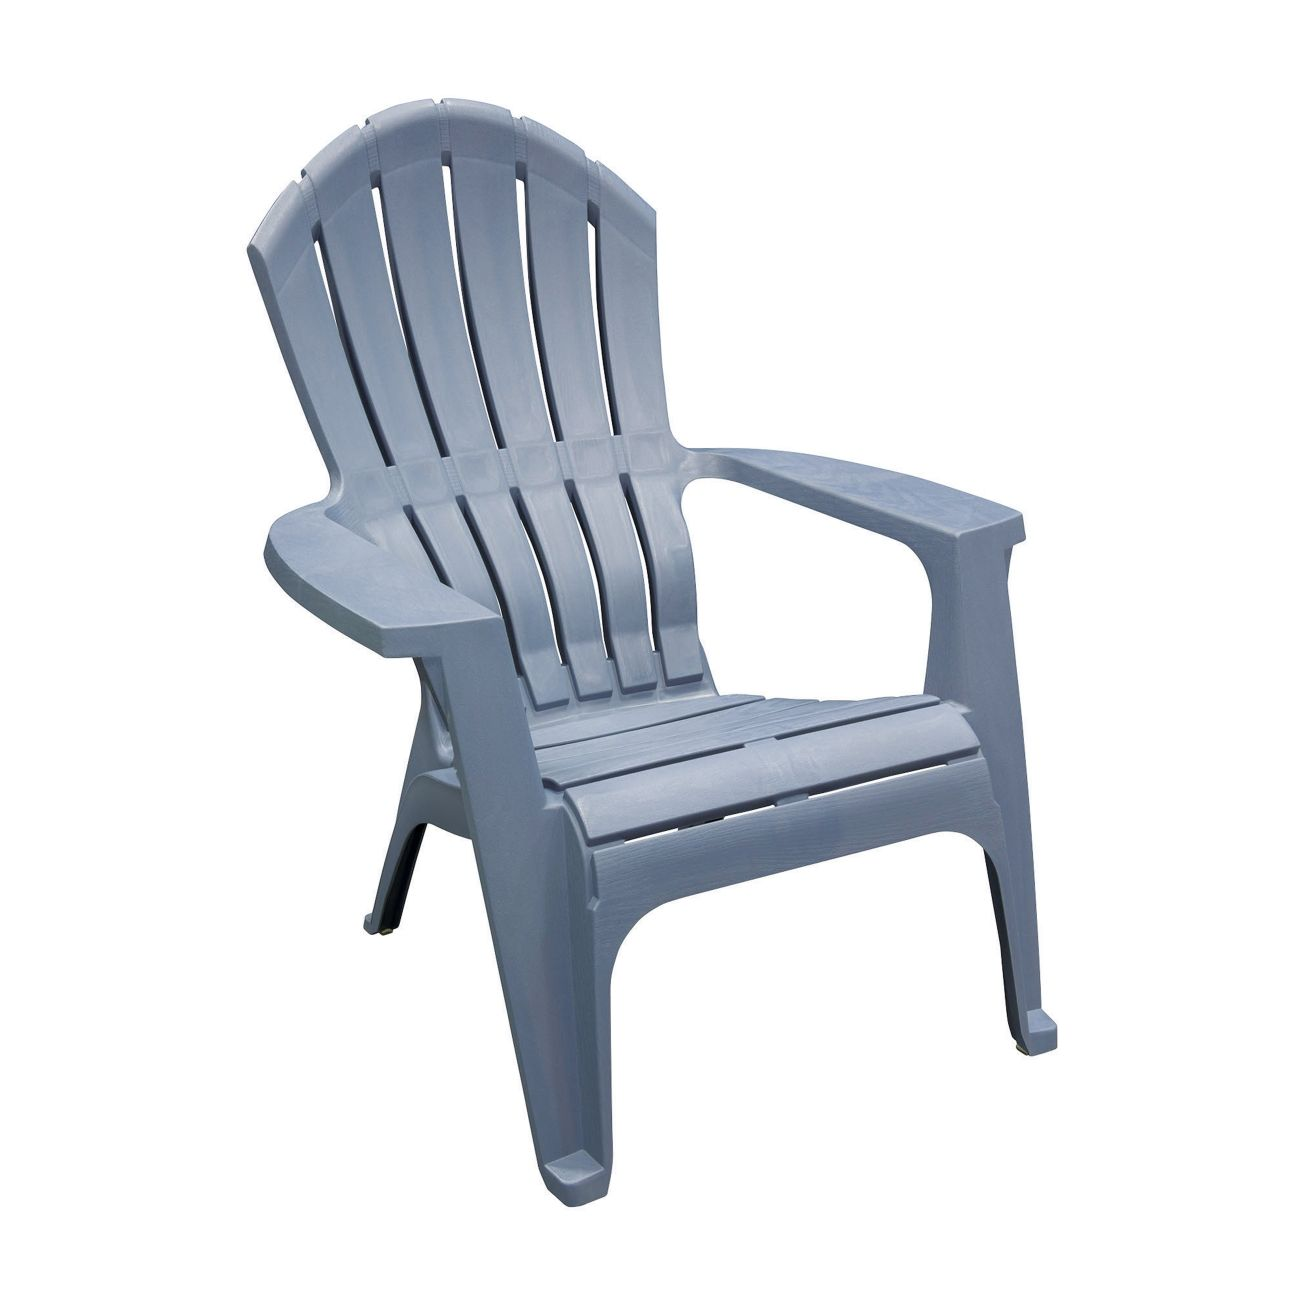 Awesome Adams Real Comfort Resin Adirondack Chair 8371 94 3901 Ibusinesslaw Wood Chair Design Ideas Ibusinesslaworg